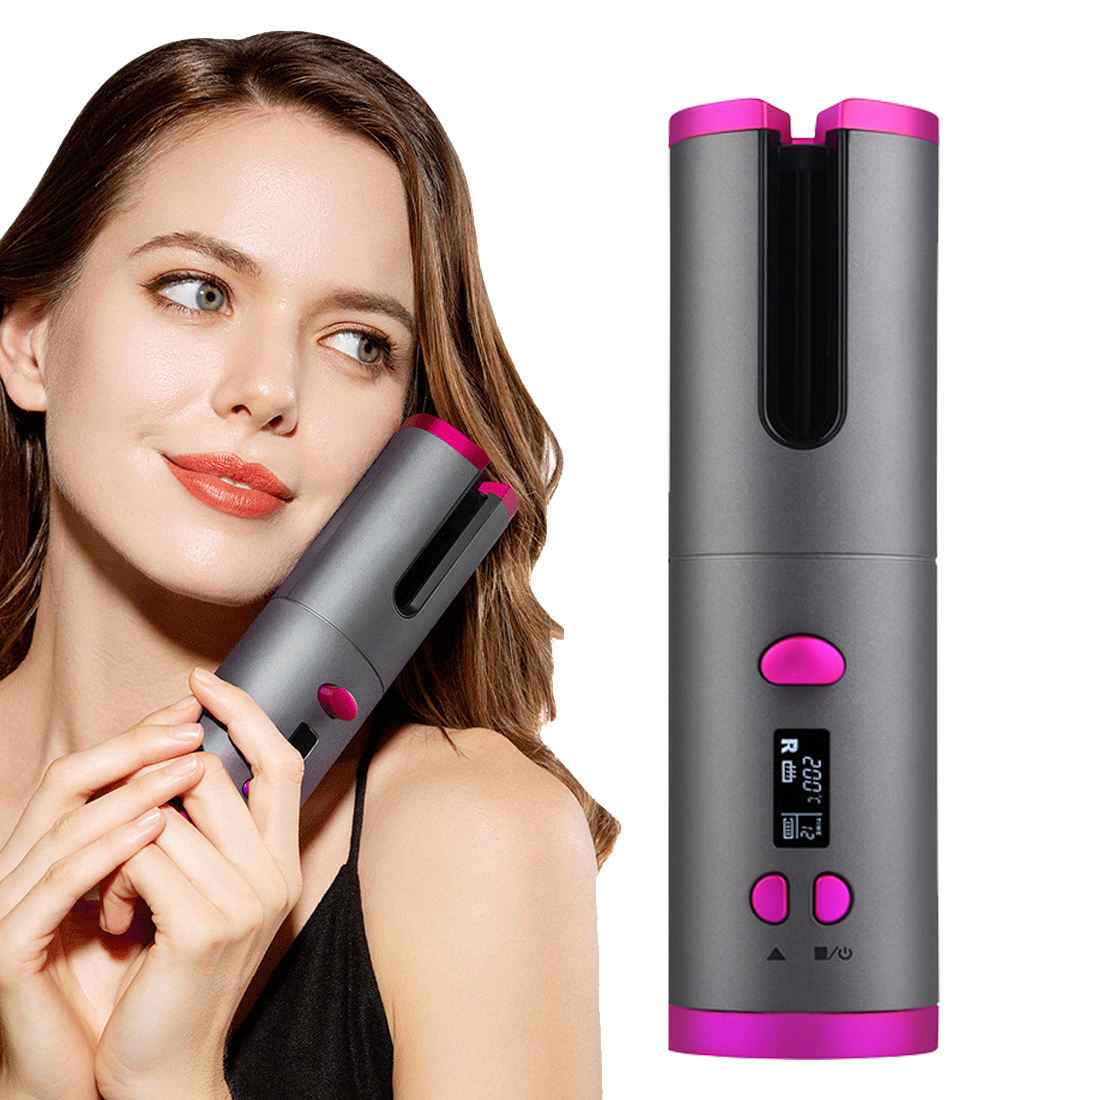 USB Hair Curlers Automatic Curling Iron LCD Display Curling Wand 5000MAH Battery Hair Curling irons Ceramic Curling Hair tools